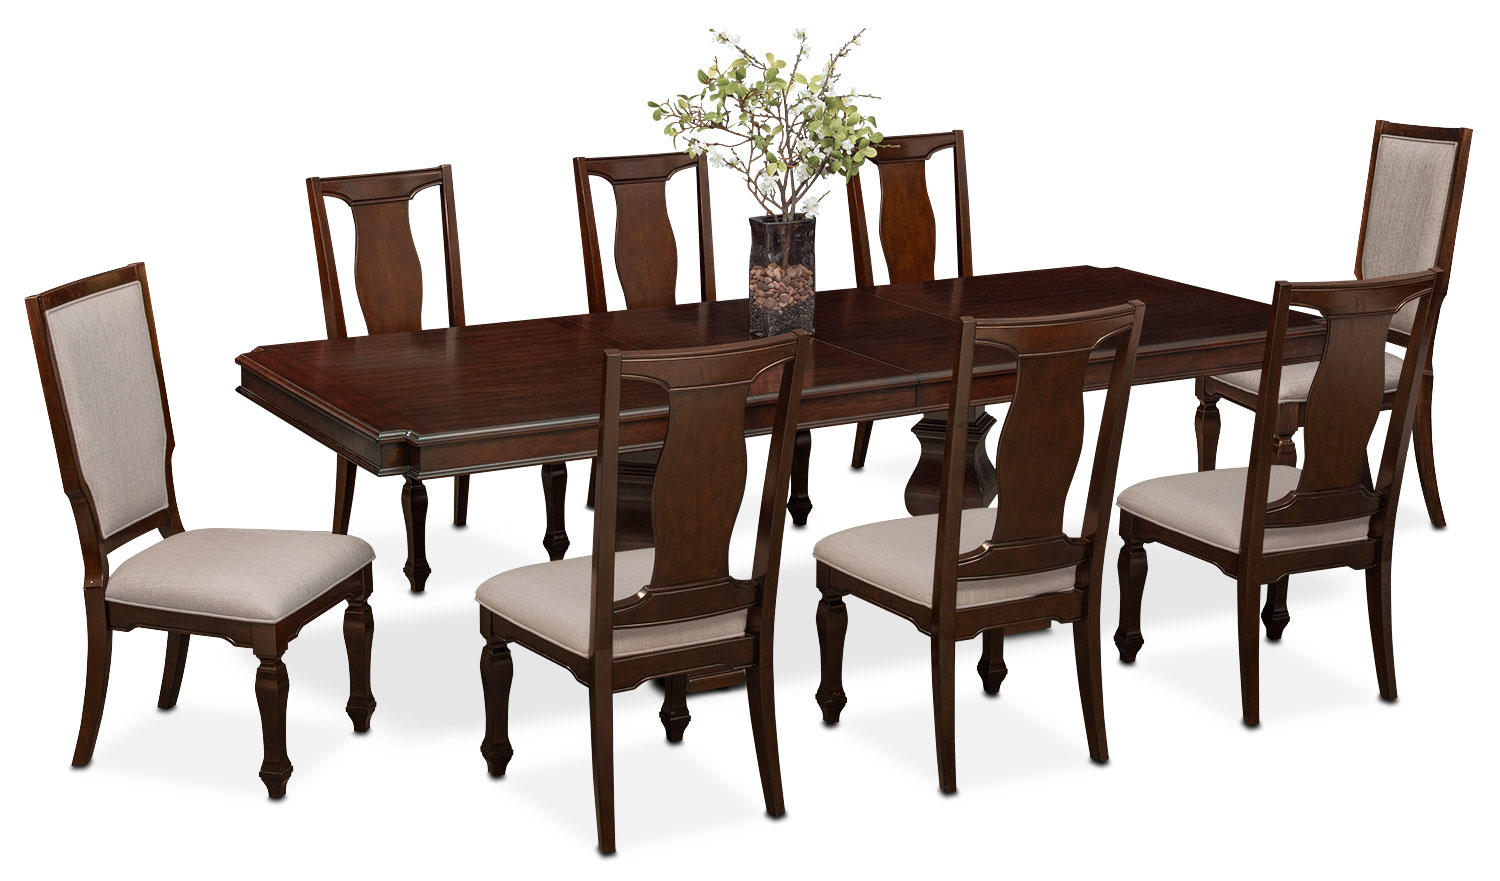 Dining Room Furniture - Vienna Dining Table, 6 Side Chairs and 2 Upholstered Side Chairs - Merlot